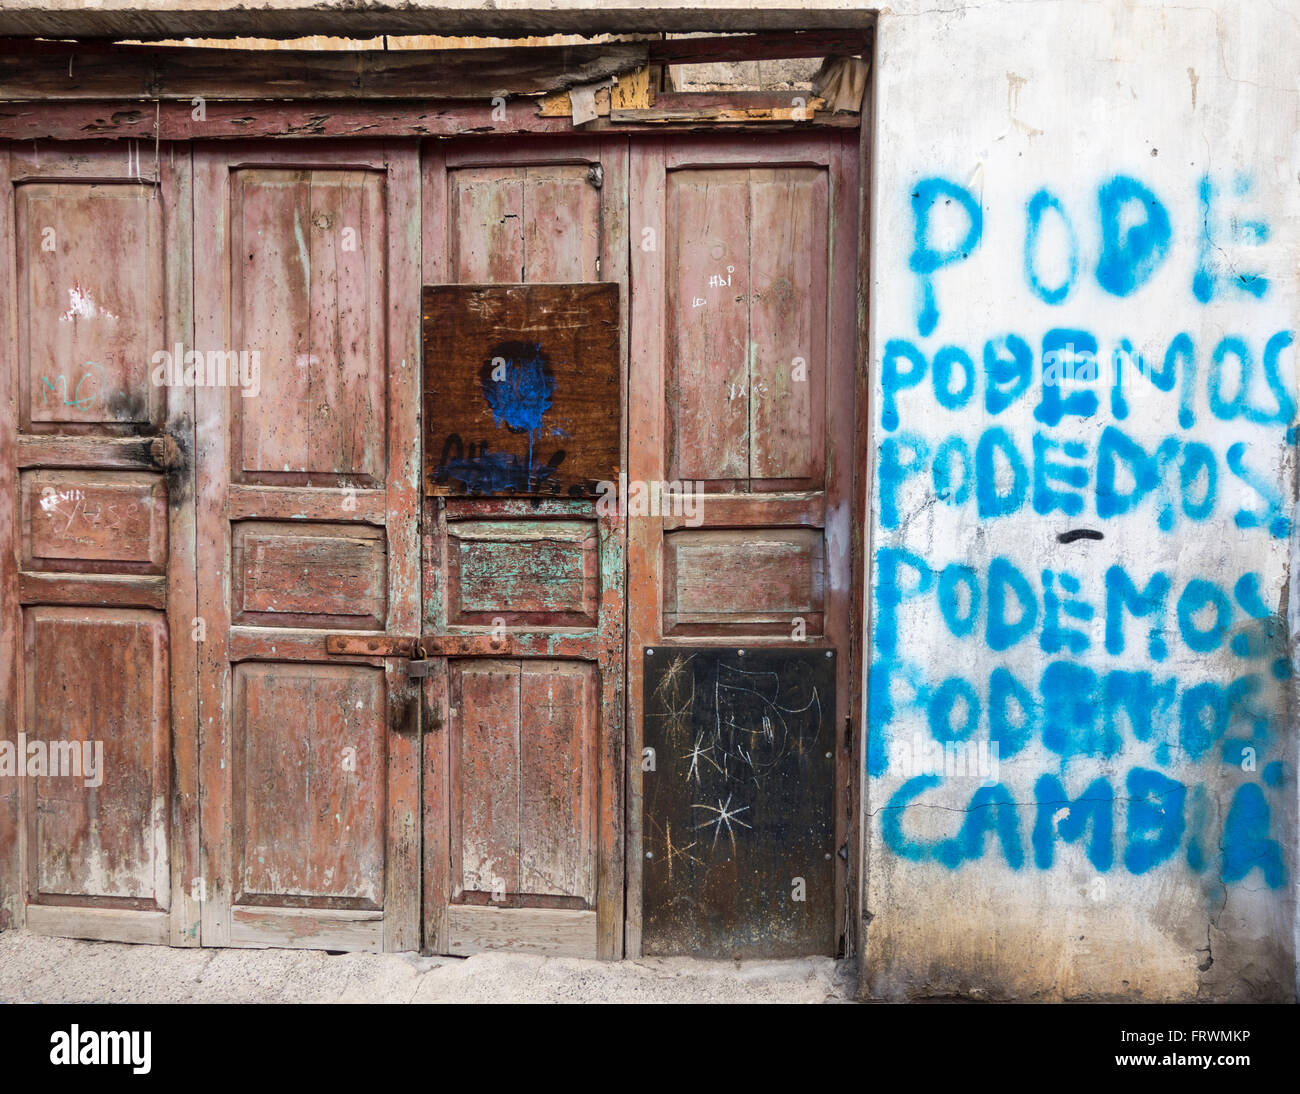 Podemos (we can in English) painted on wall of empty house during Spanish elections - Stock Image